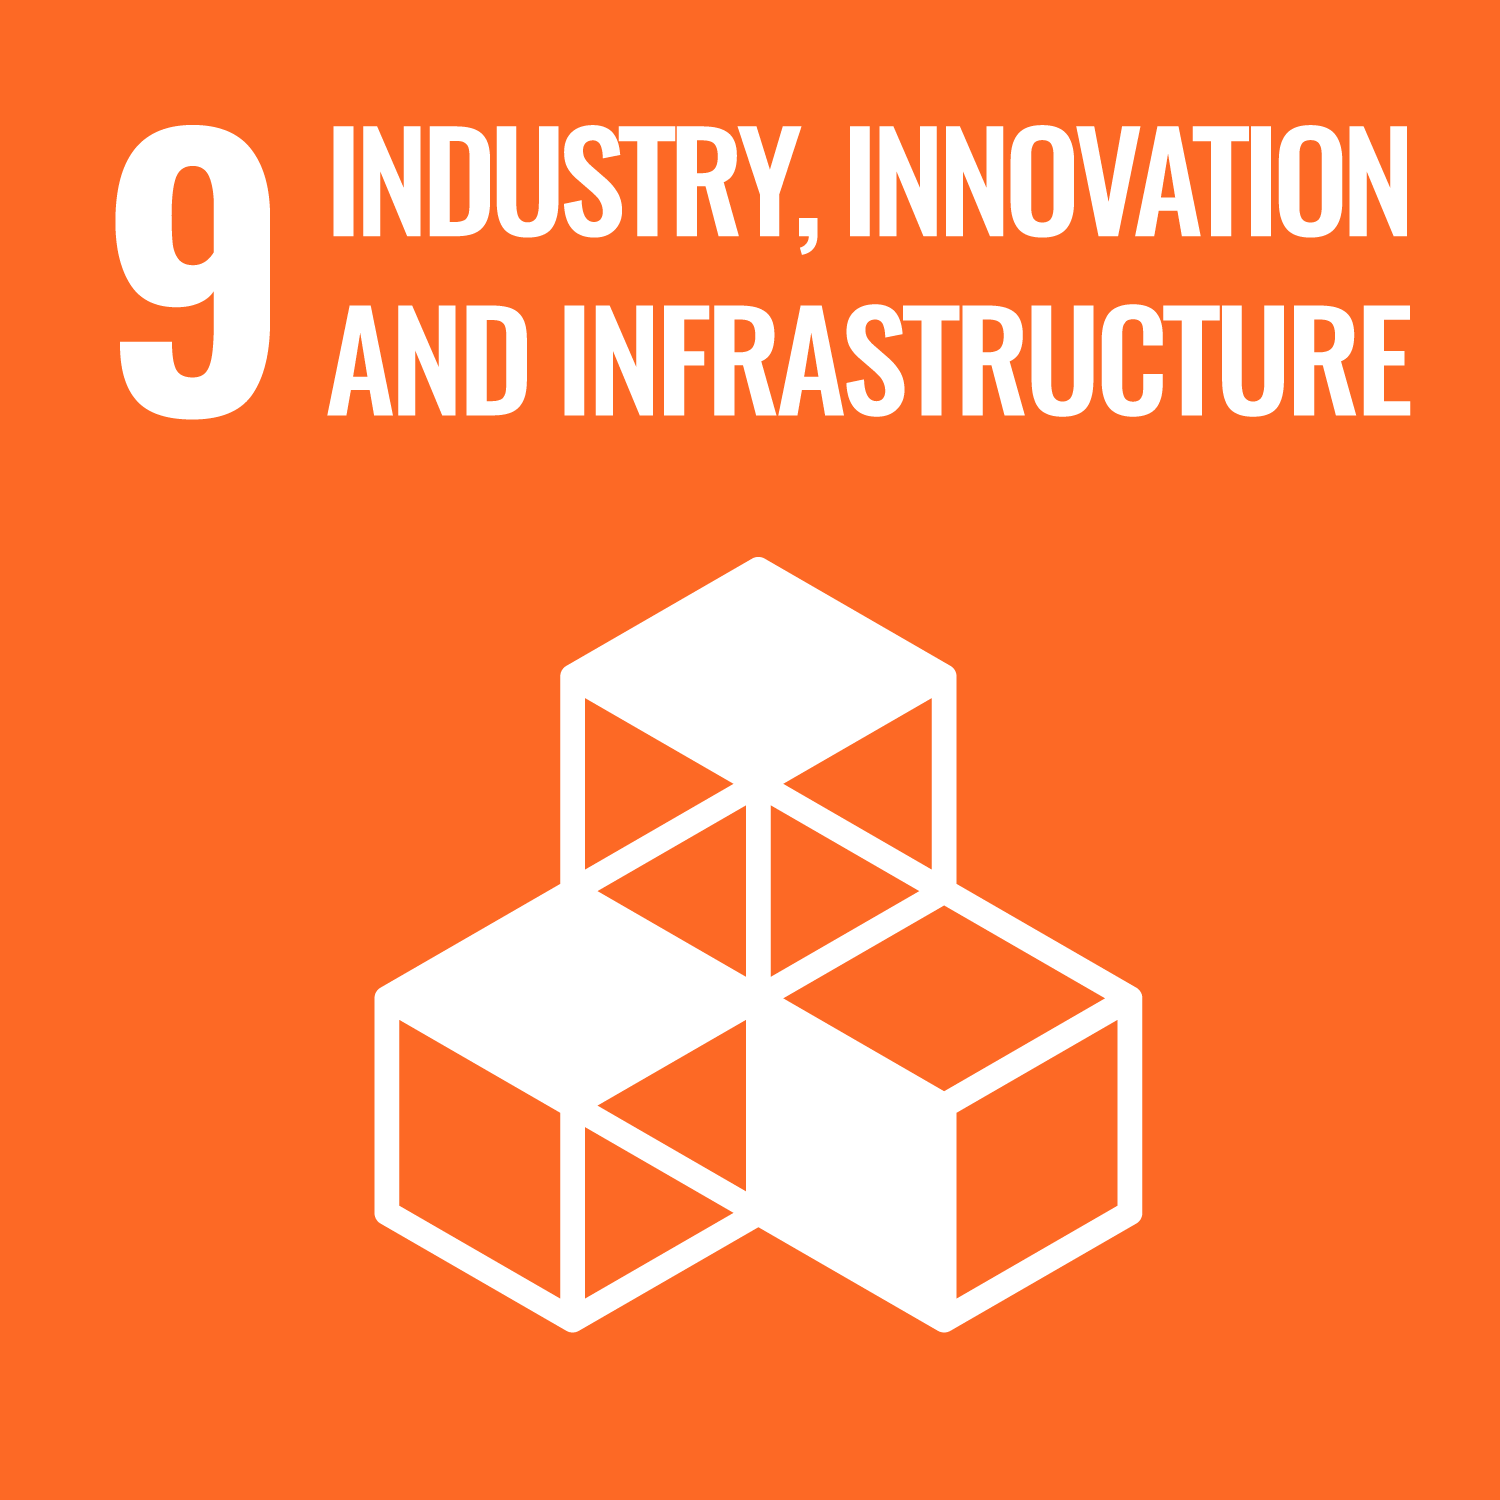 UN Sustainable Development Goal 9: Industry, Innovation and Infrastructure